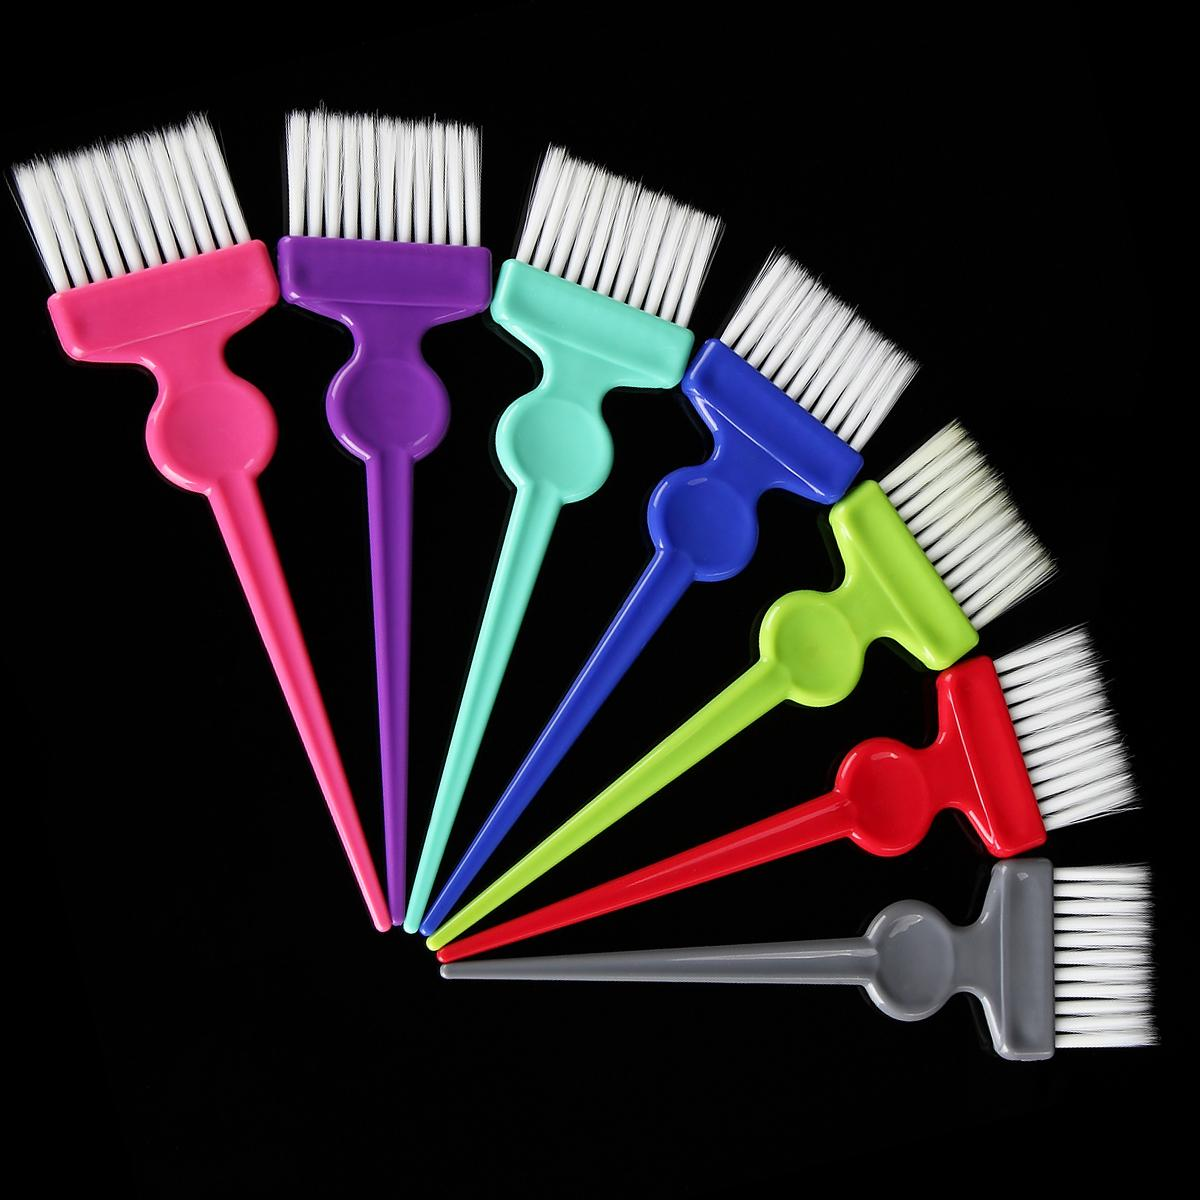 2Pc Random Color Hair Dyeing Brush Comb Salon Barber Tinting Hairdressing Hairstyling Pigment Coloring Dye Tool Partition End